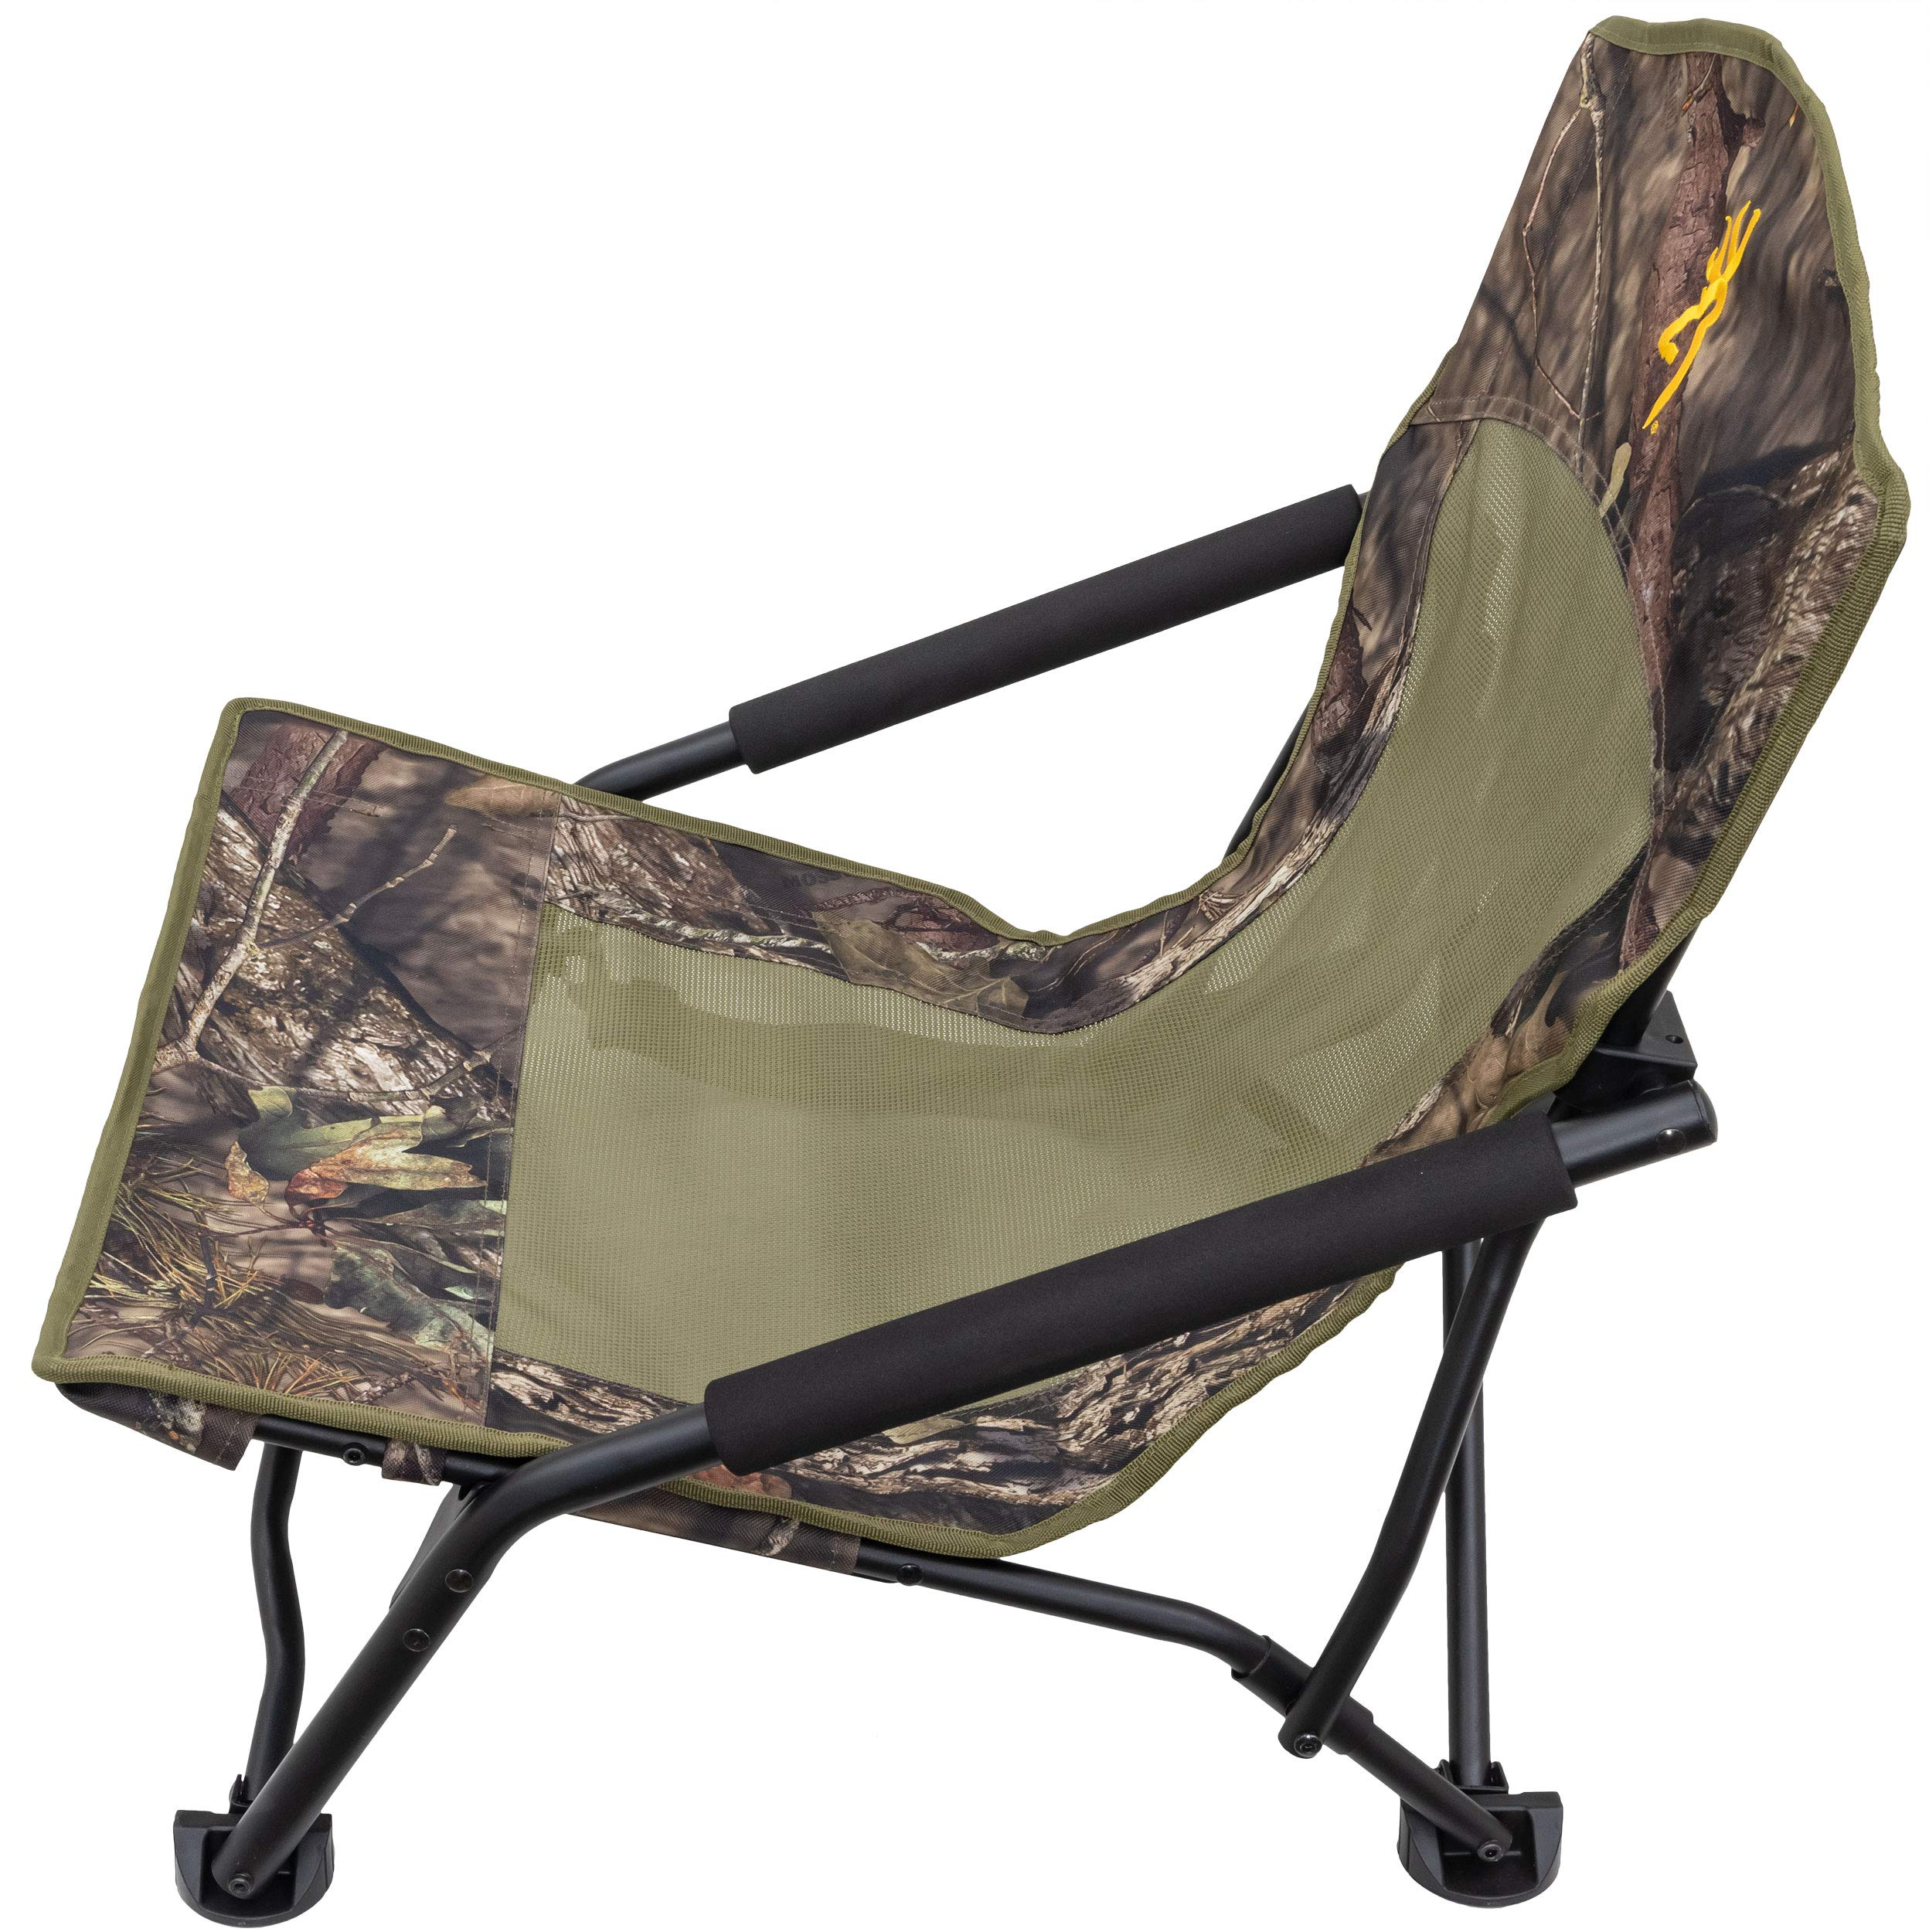 Enjoyable Browning Camping Strutter Hunting Chair Fifth Degree Inzonedesignstudio Interior Chair Design Inzonedesignstudiocom